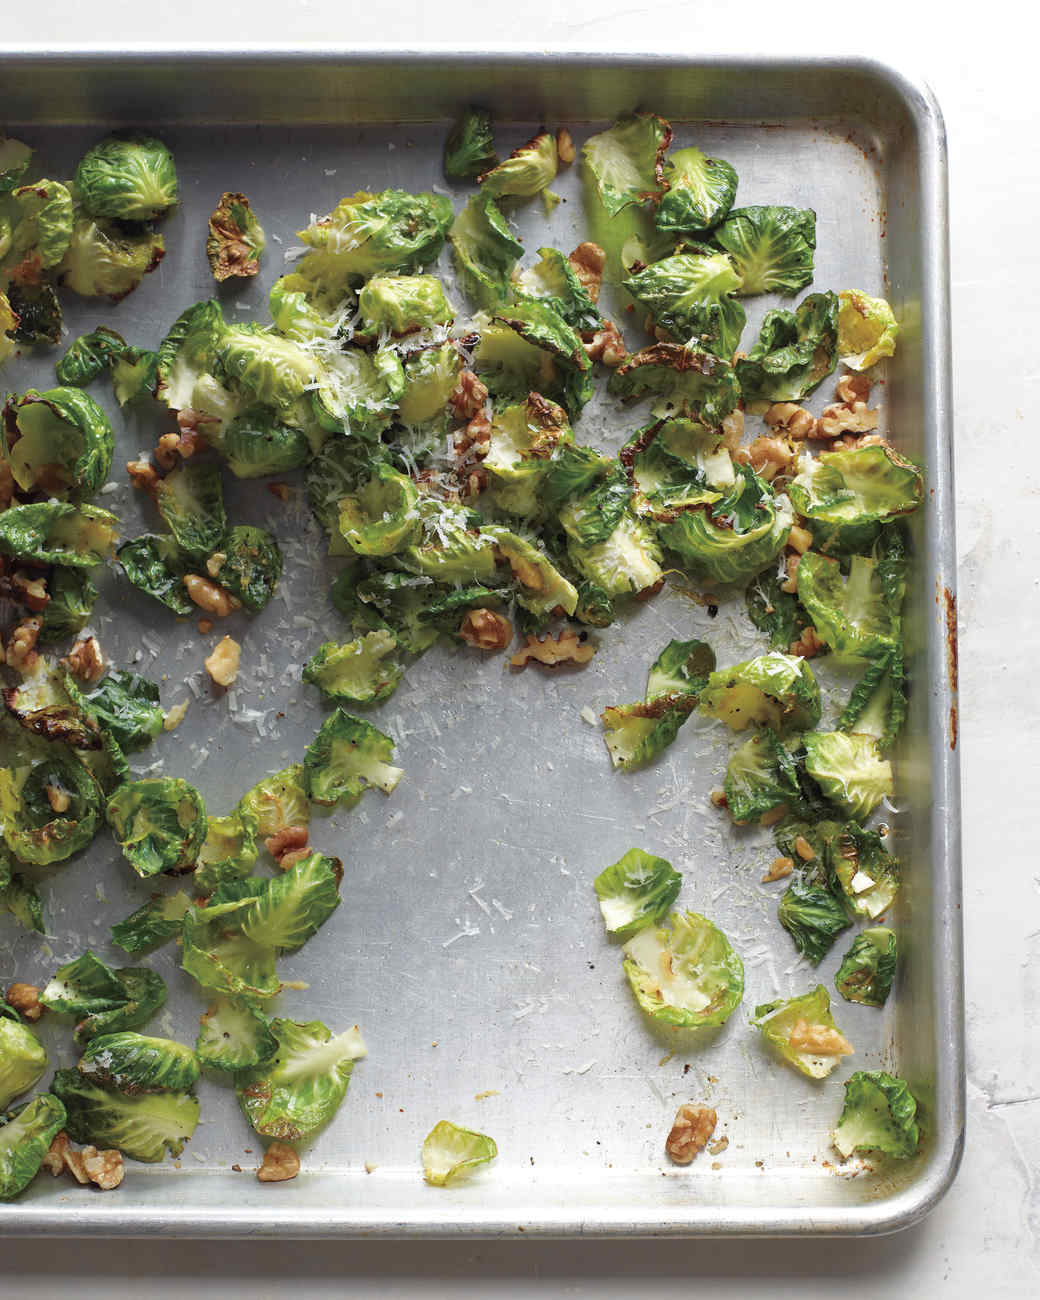 in-season-crispy-brussel-leaves-035-med109000.jpg